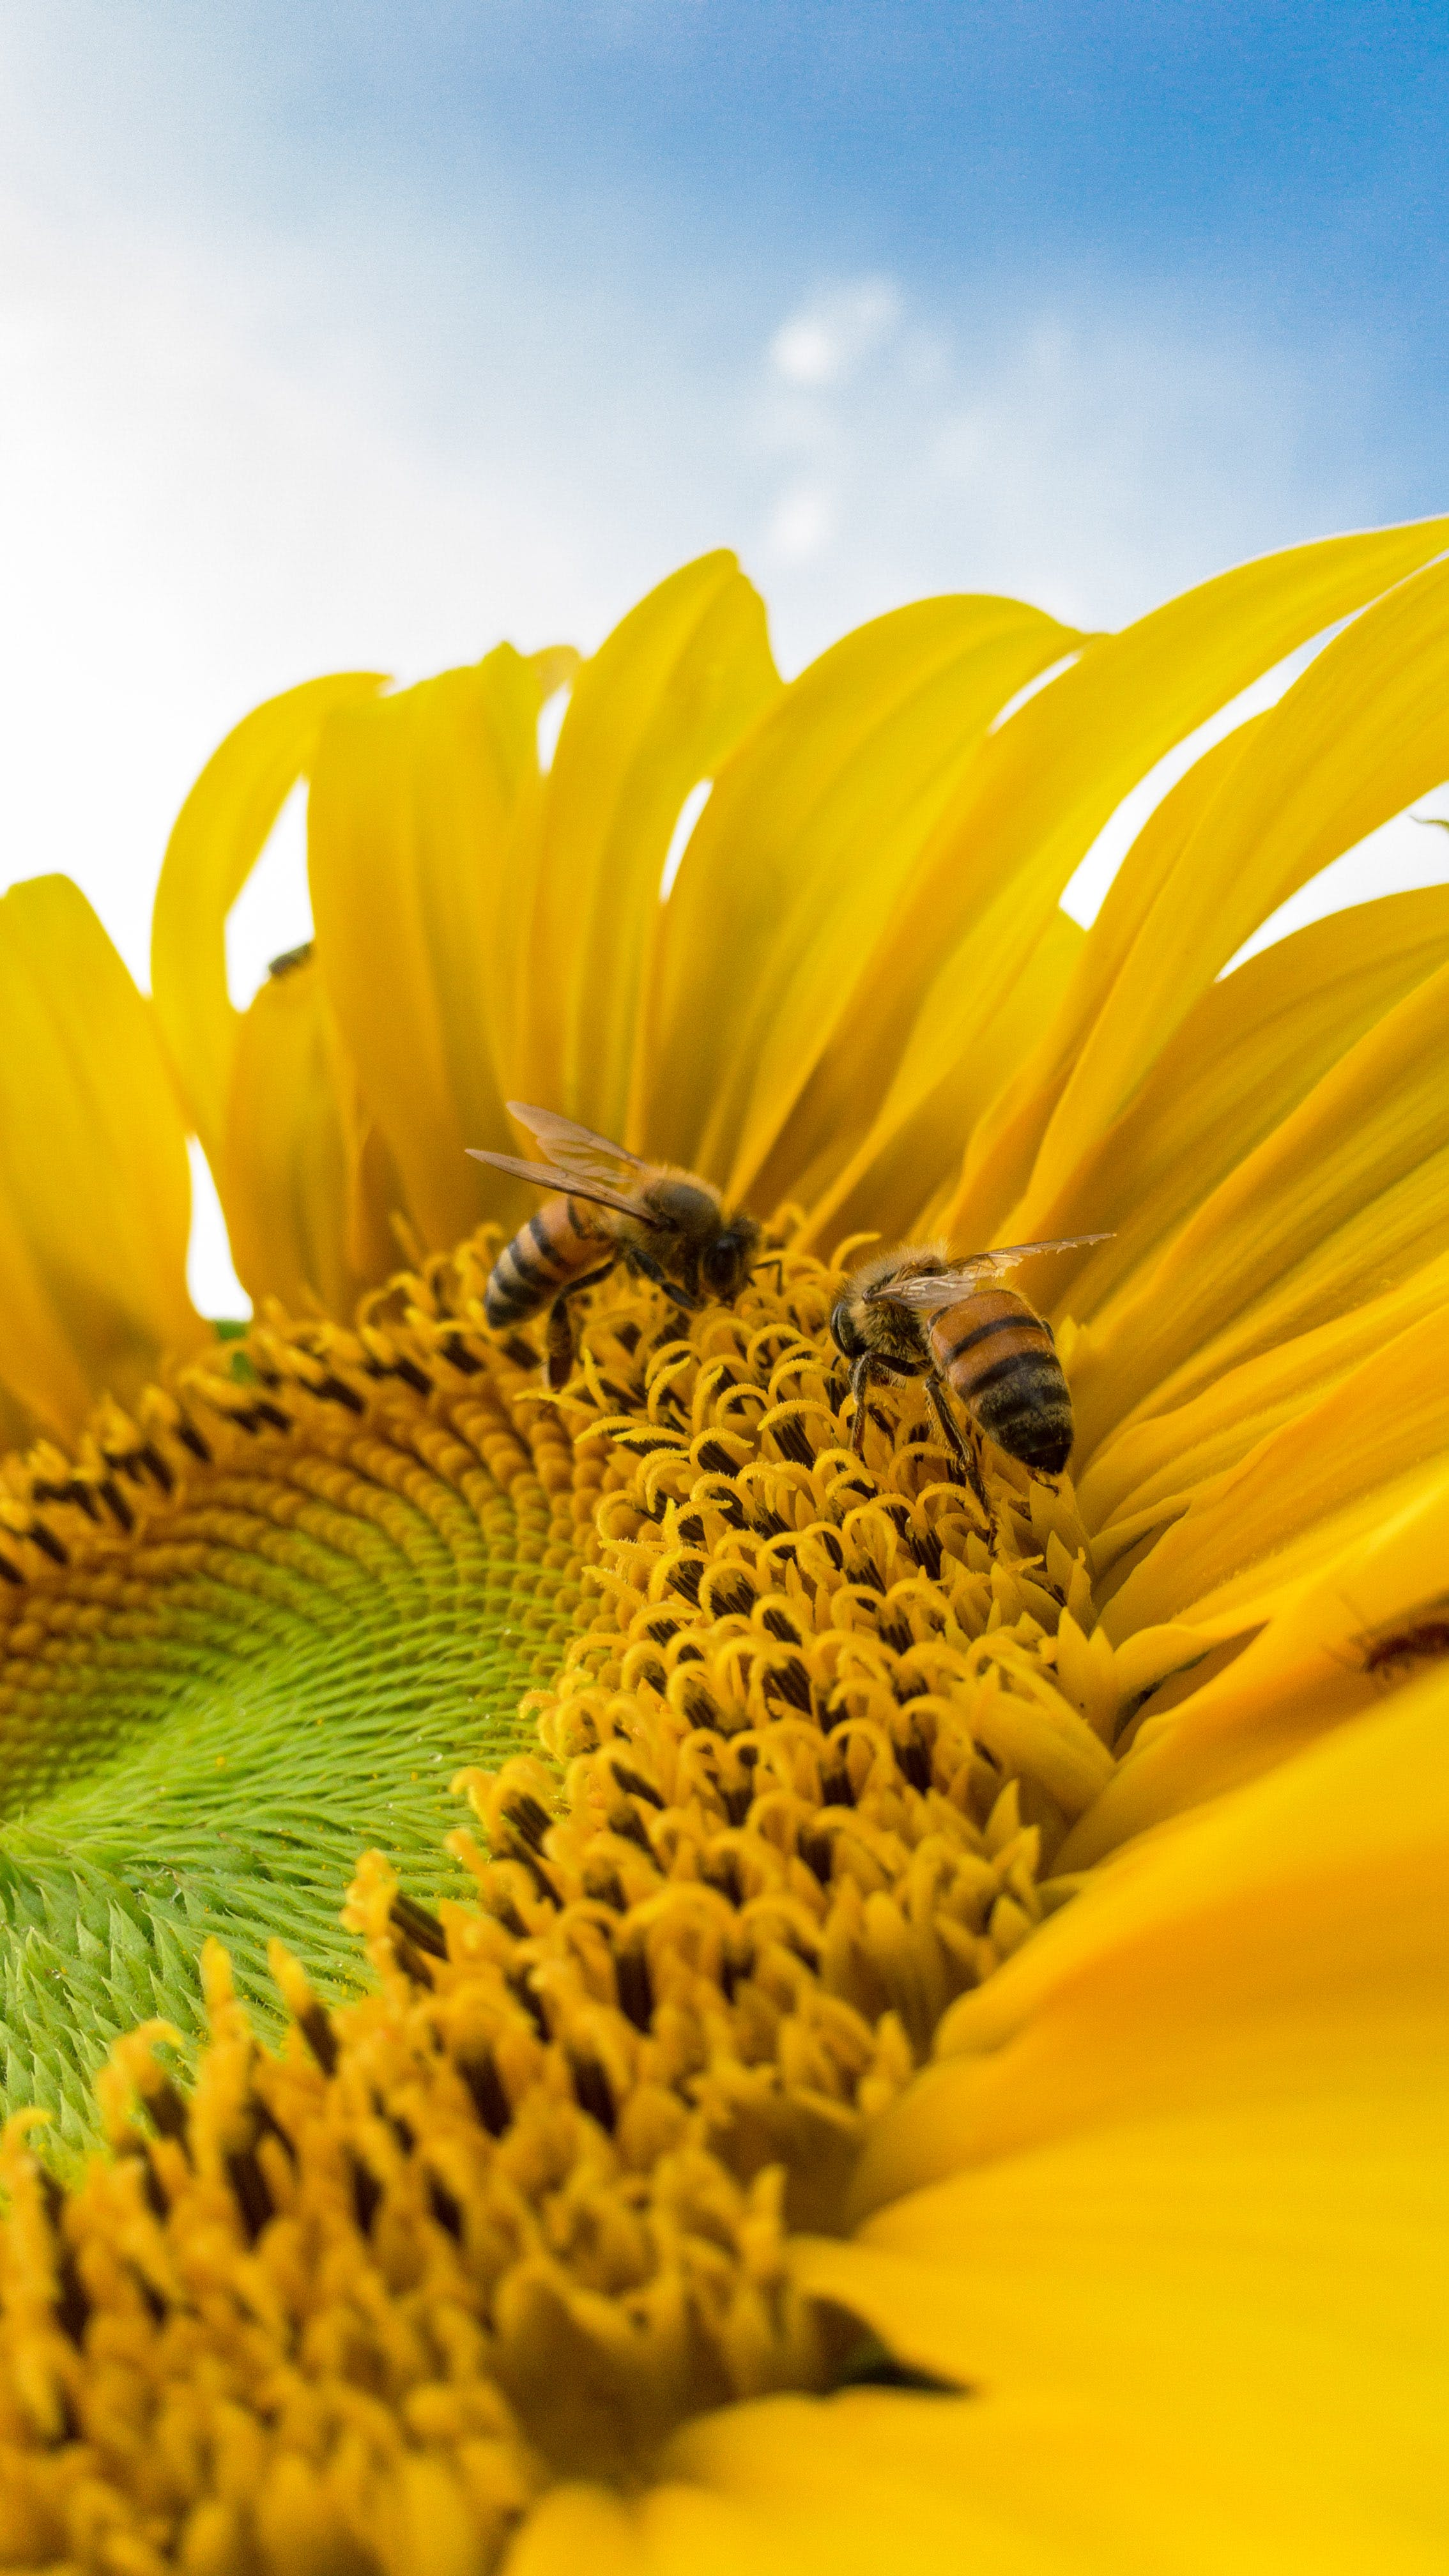 Macro Photo of Bumblebees on Yellow Sunflower